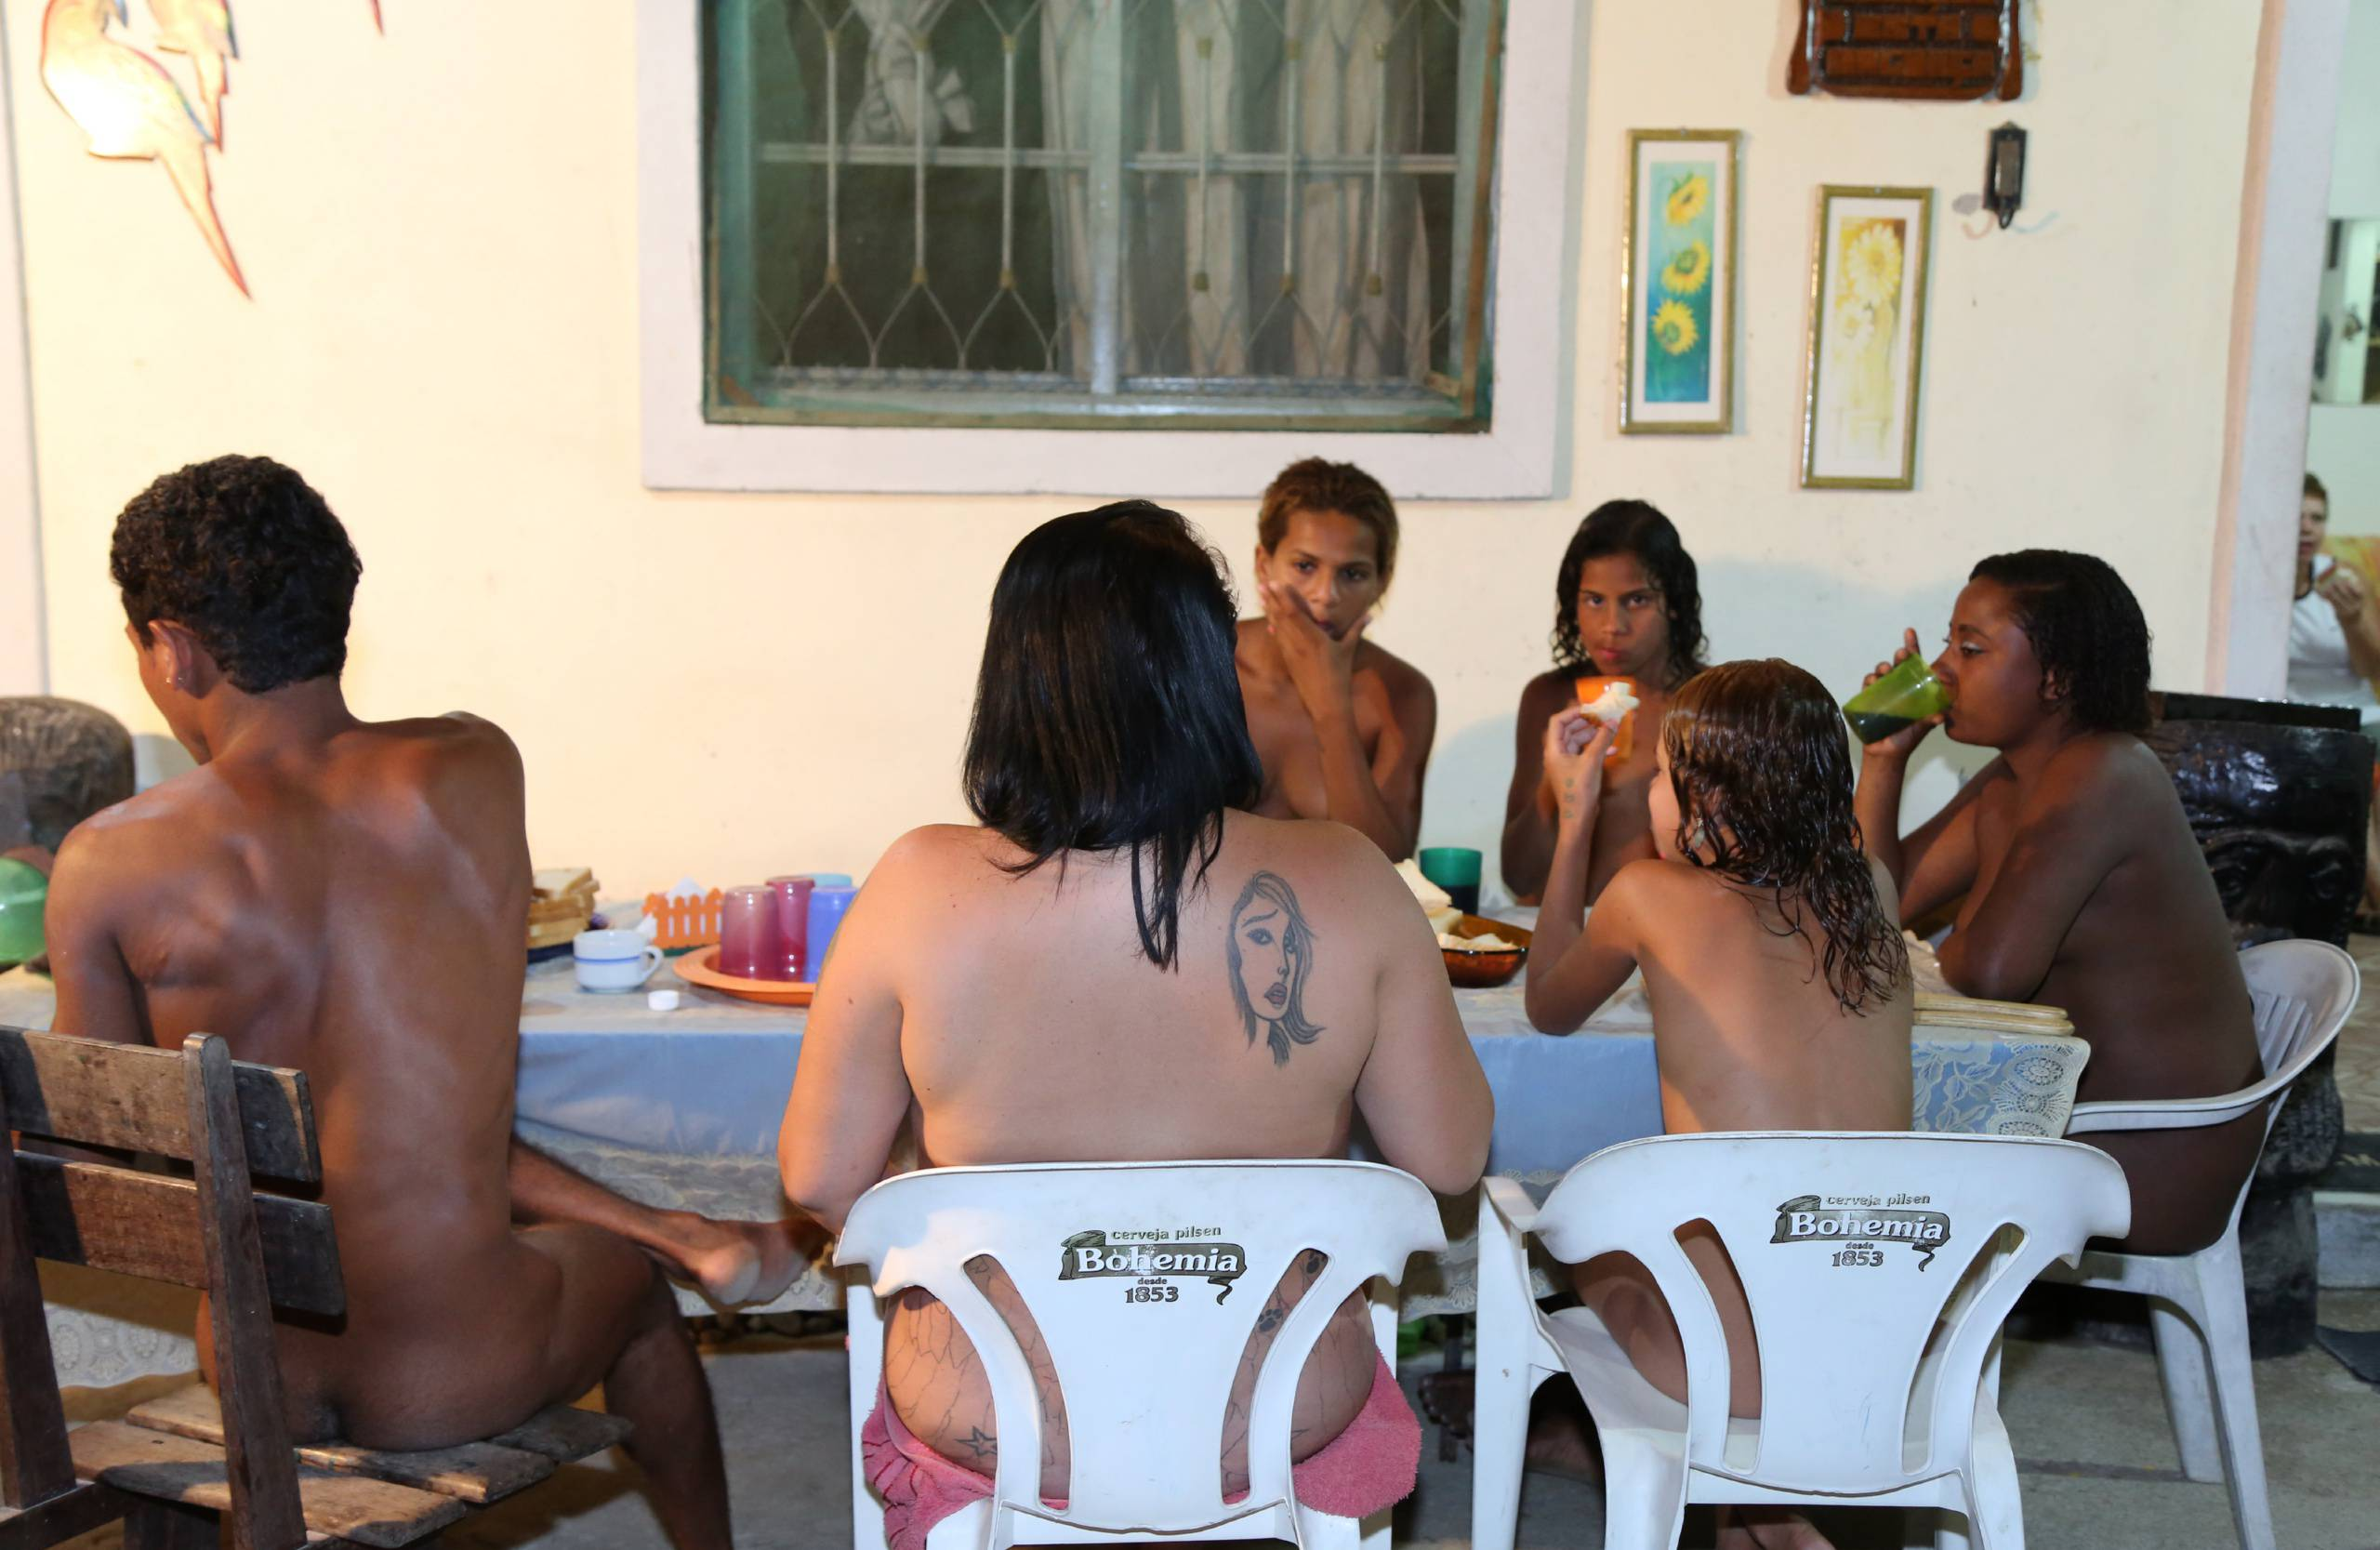 Nudist Photos A Family Gathering - 2